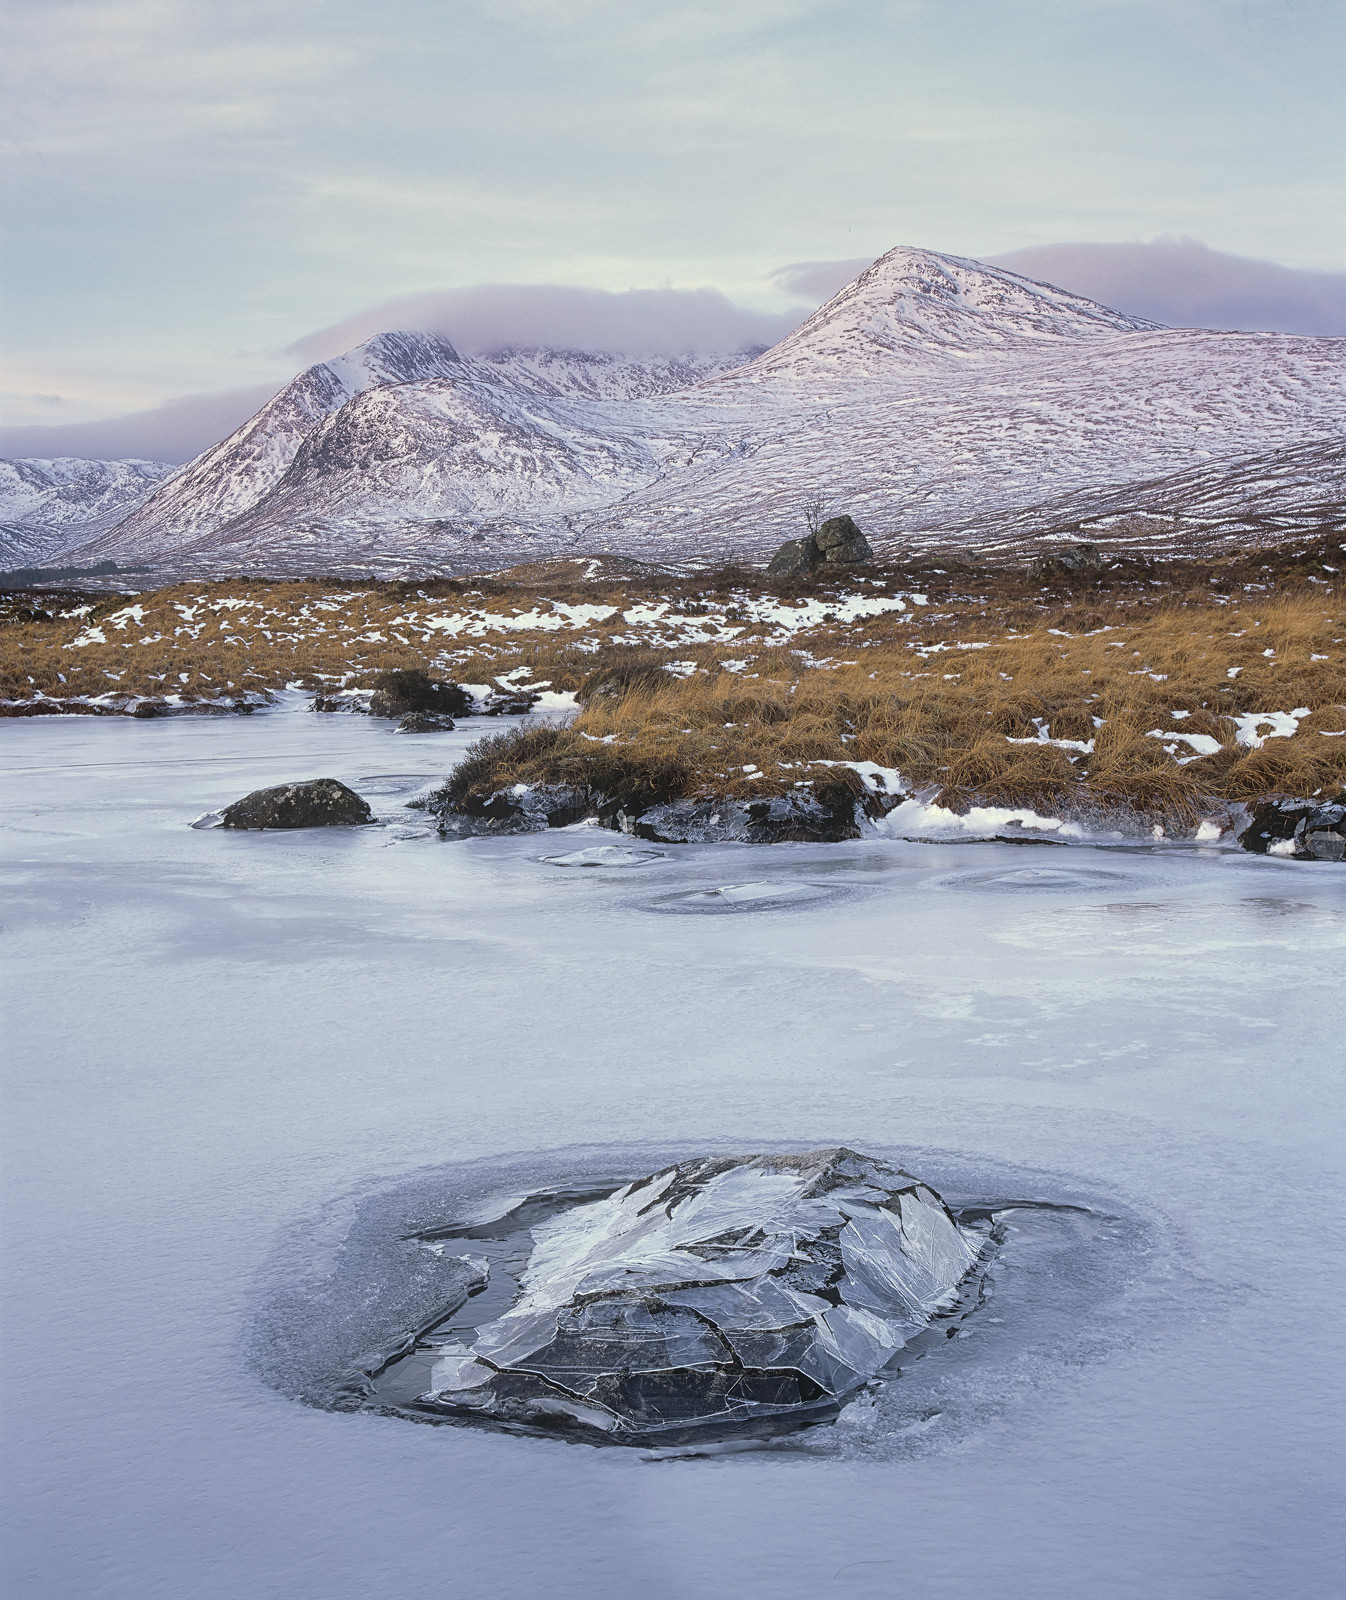 When winter weather sets in on Rannoch moor the water table rises and covers up many of the isolated rocks that protrude from...